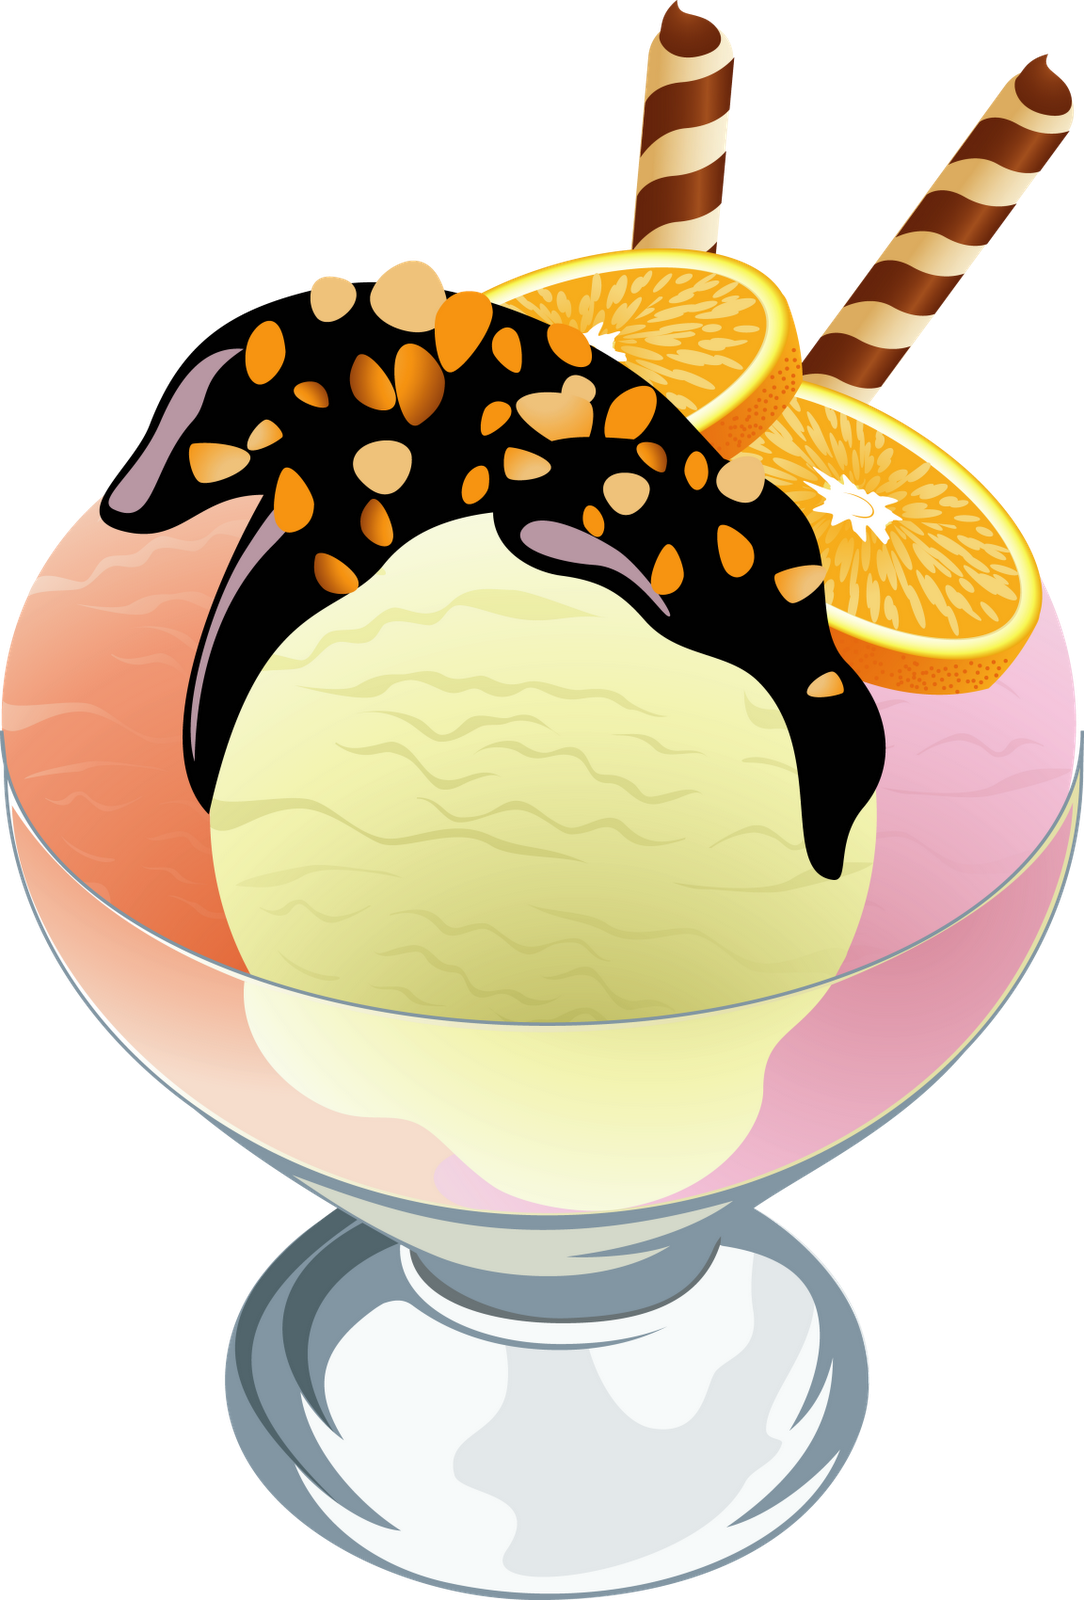 Essen trinken clipart clipart black and white stock Imágenes de Helados | Pinterest | Essen trinken, Trinken und Essen clipart black and white stock